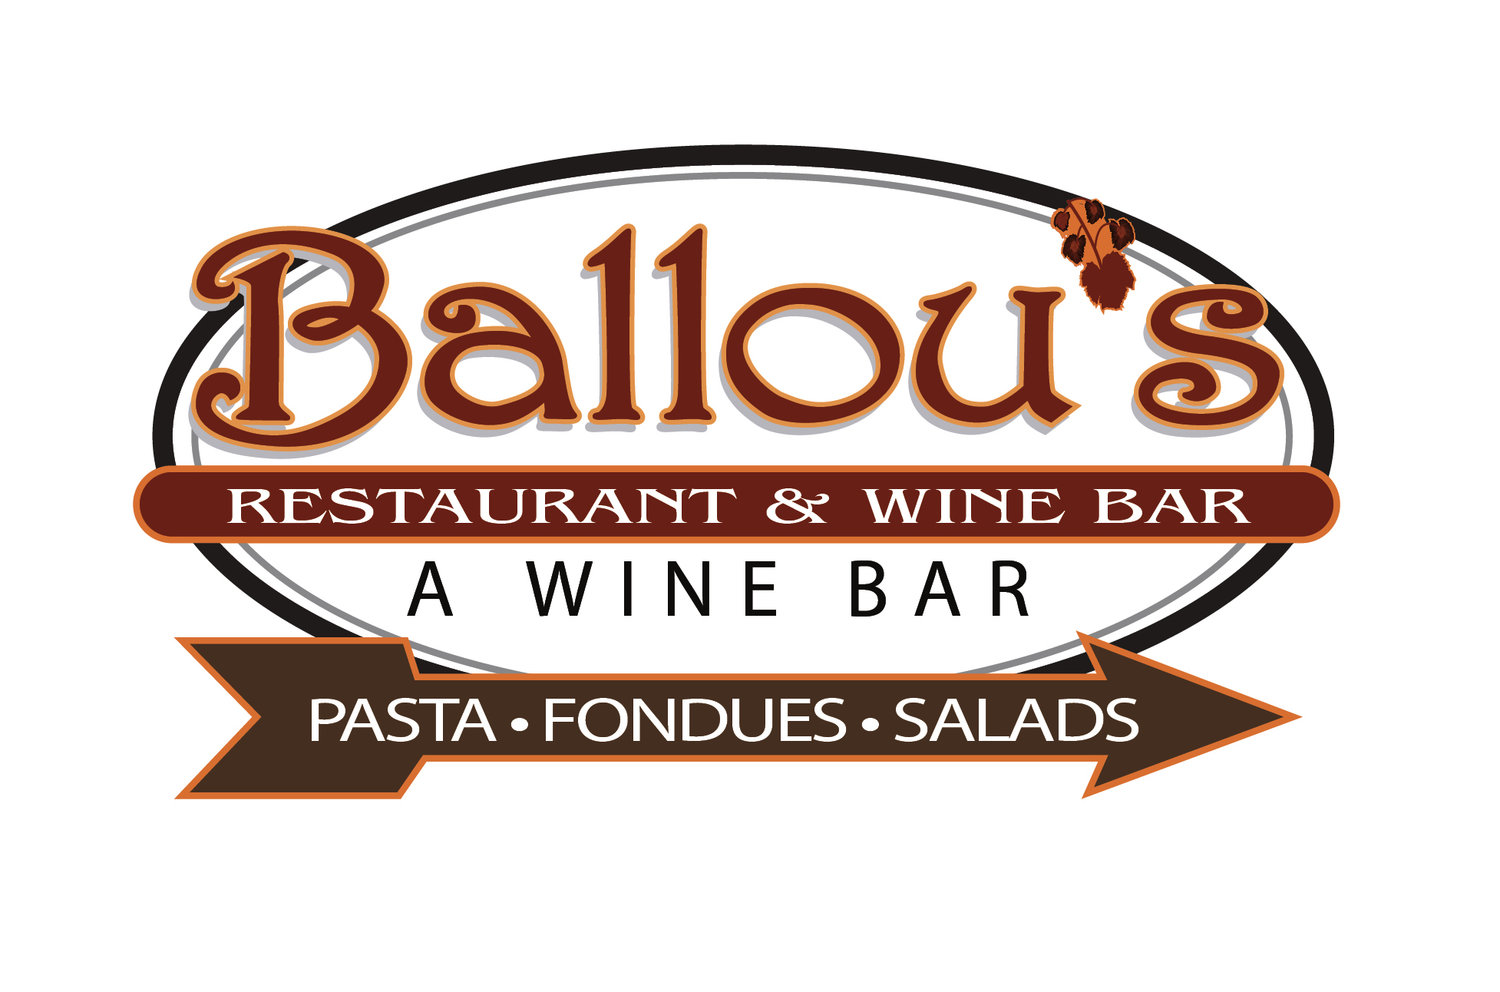 Ballou's Restaurant & Wine Bar